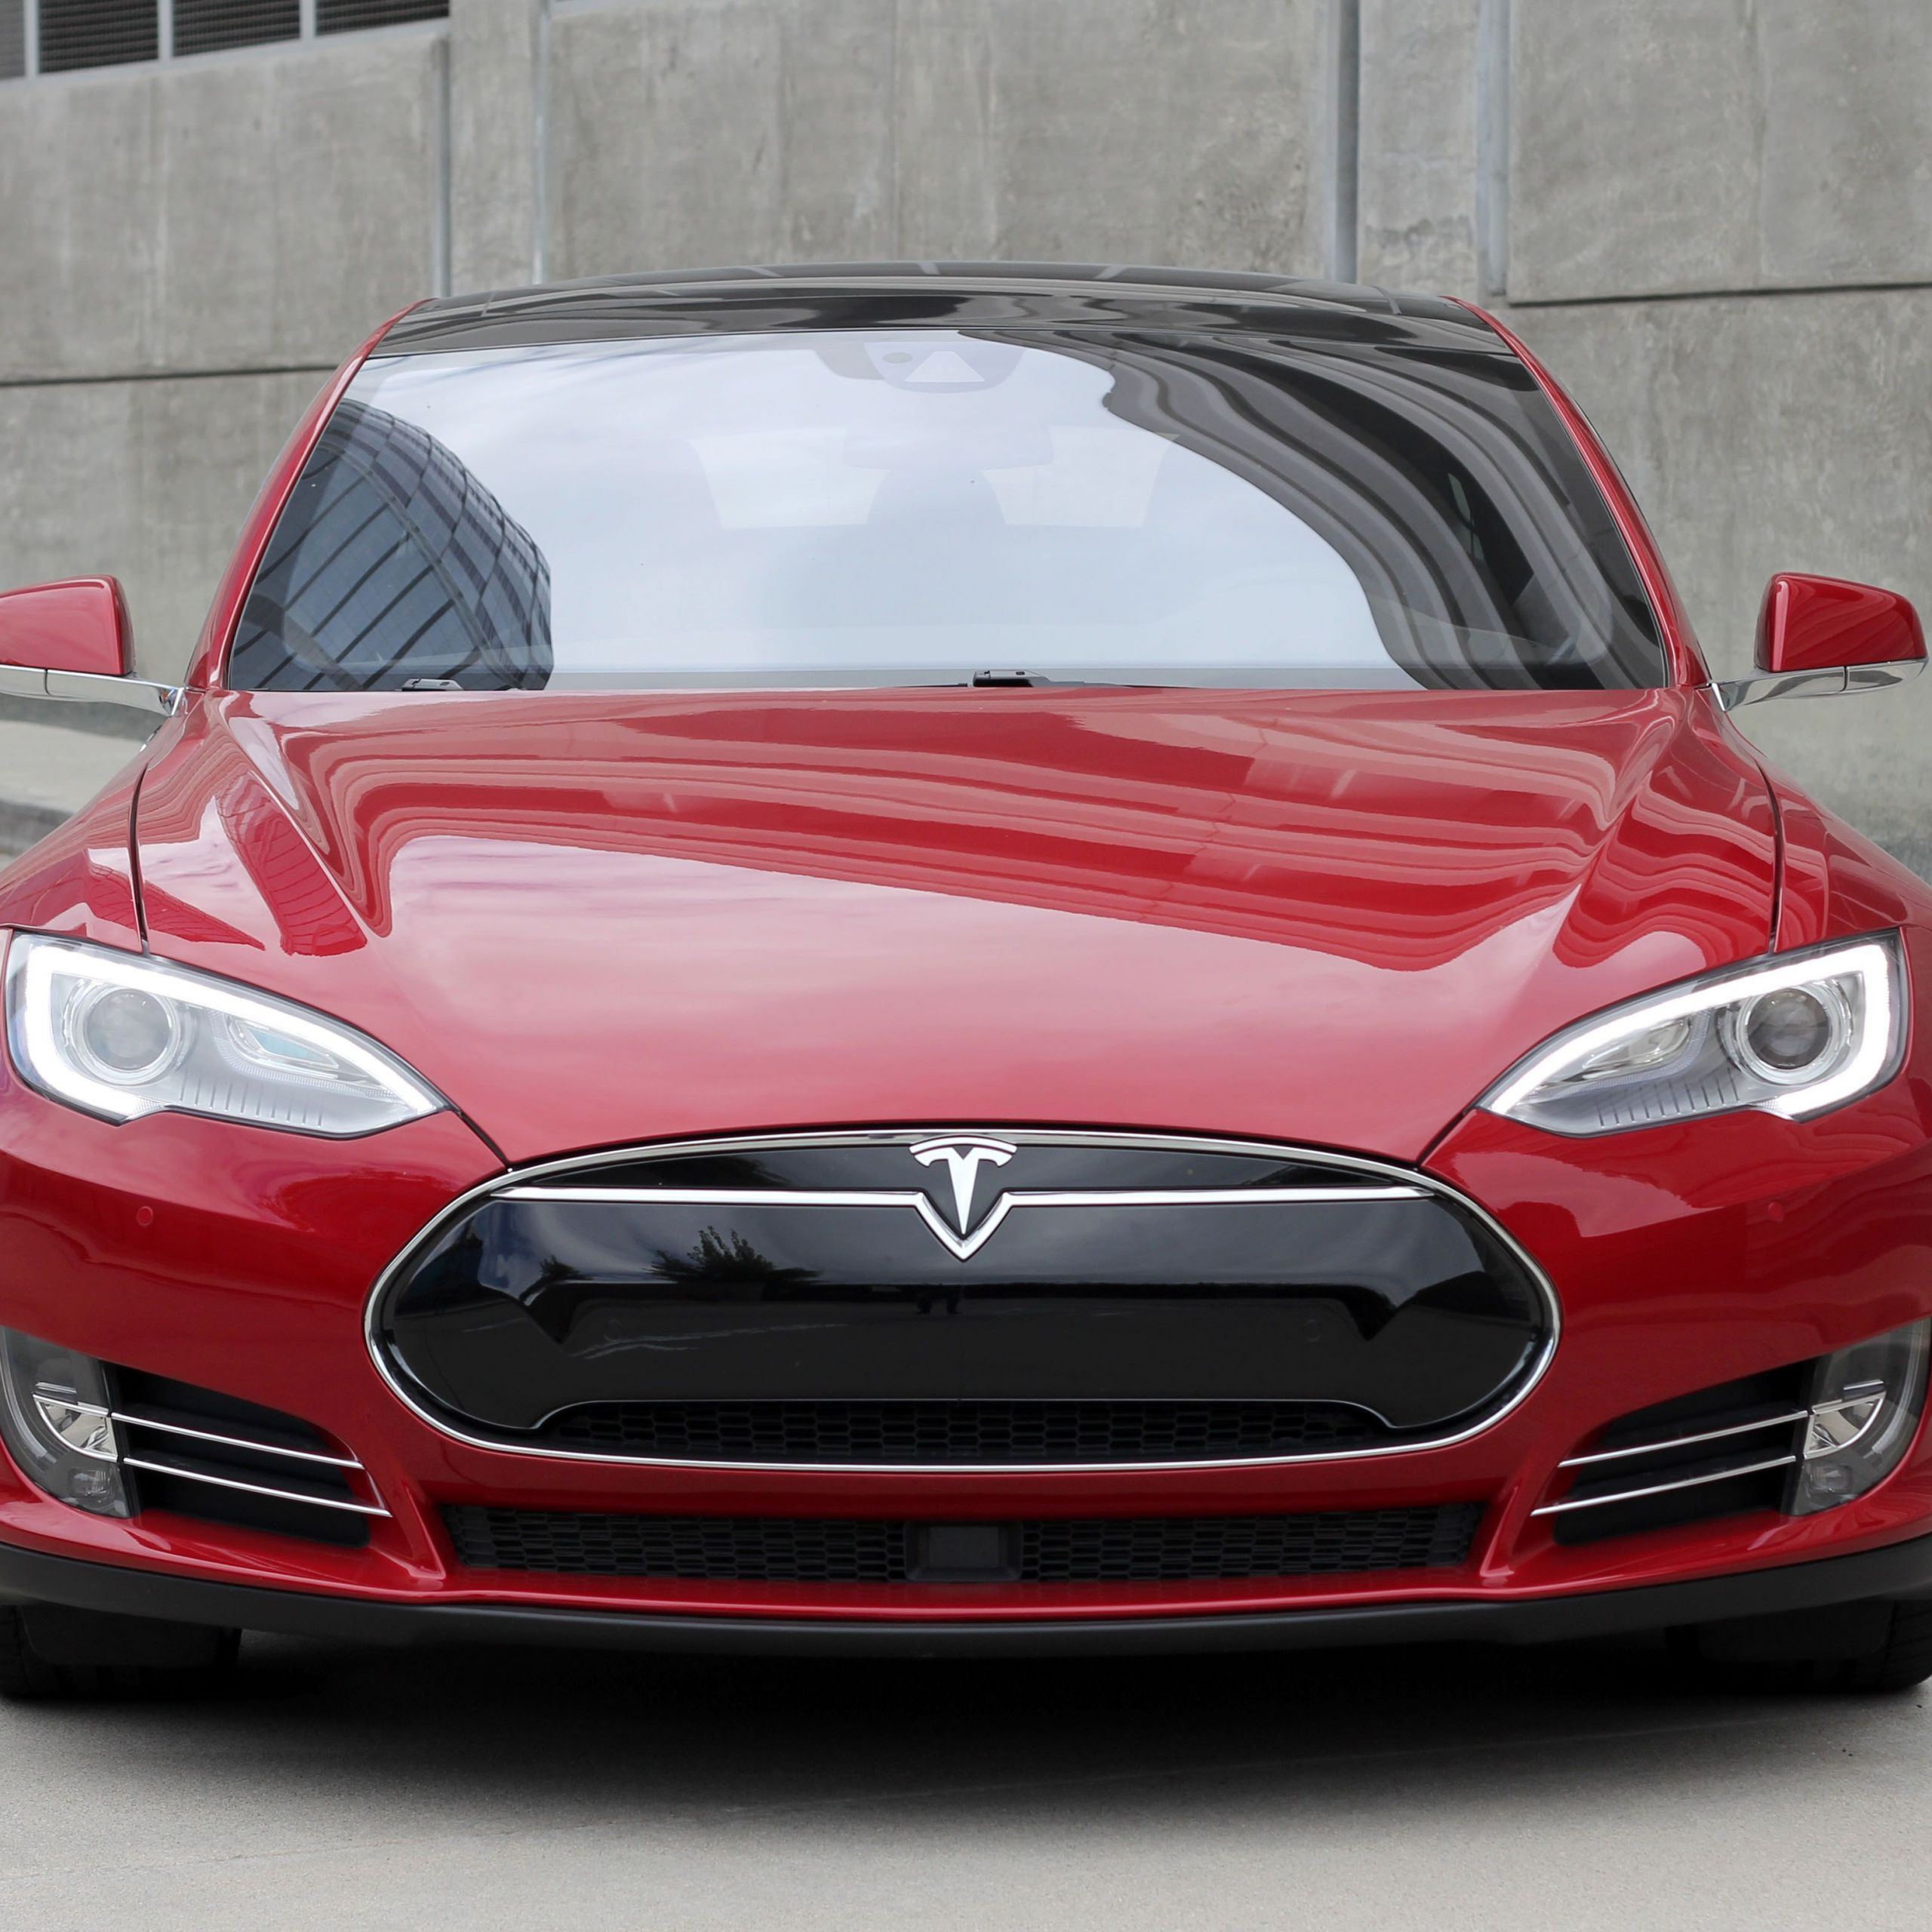 Tesla Company History Inspirational Introducing the All New Tesla Model S P90d with Ludicrous